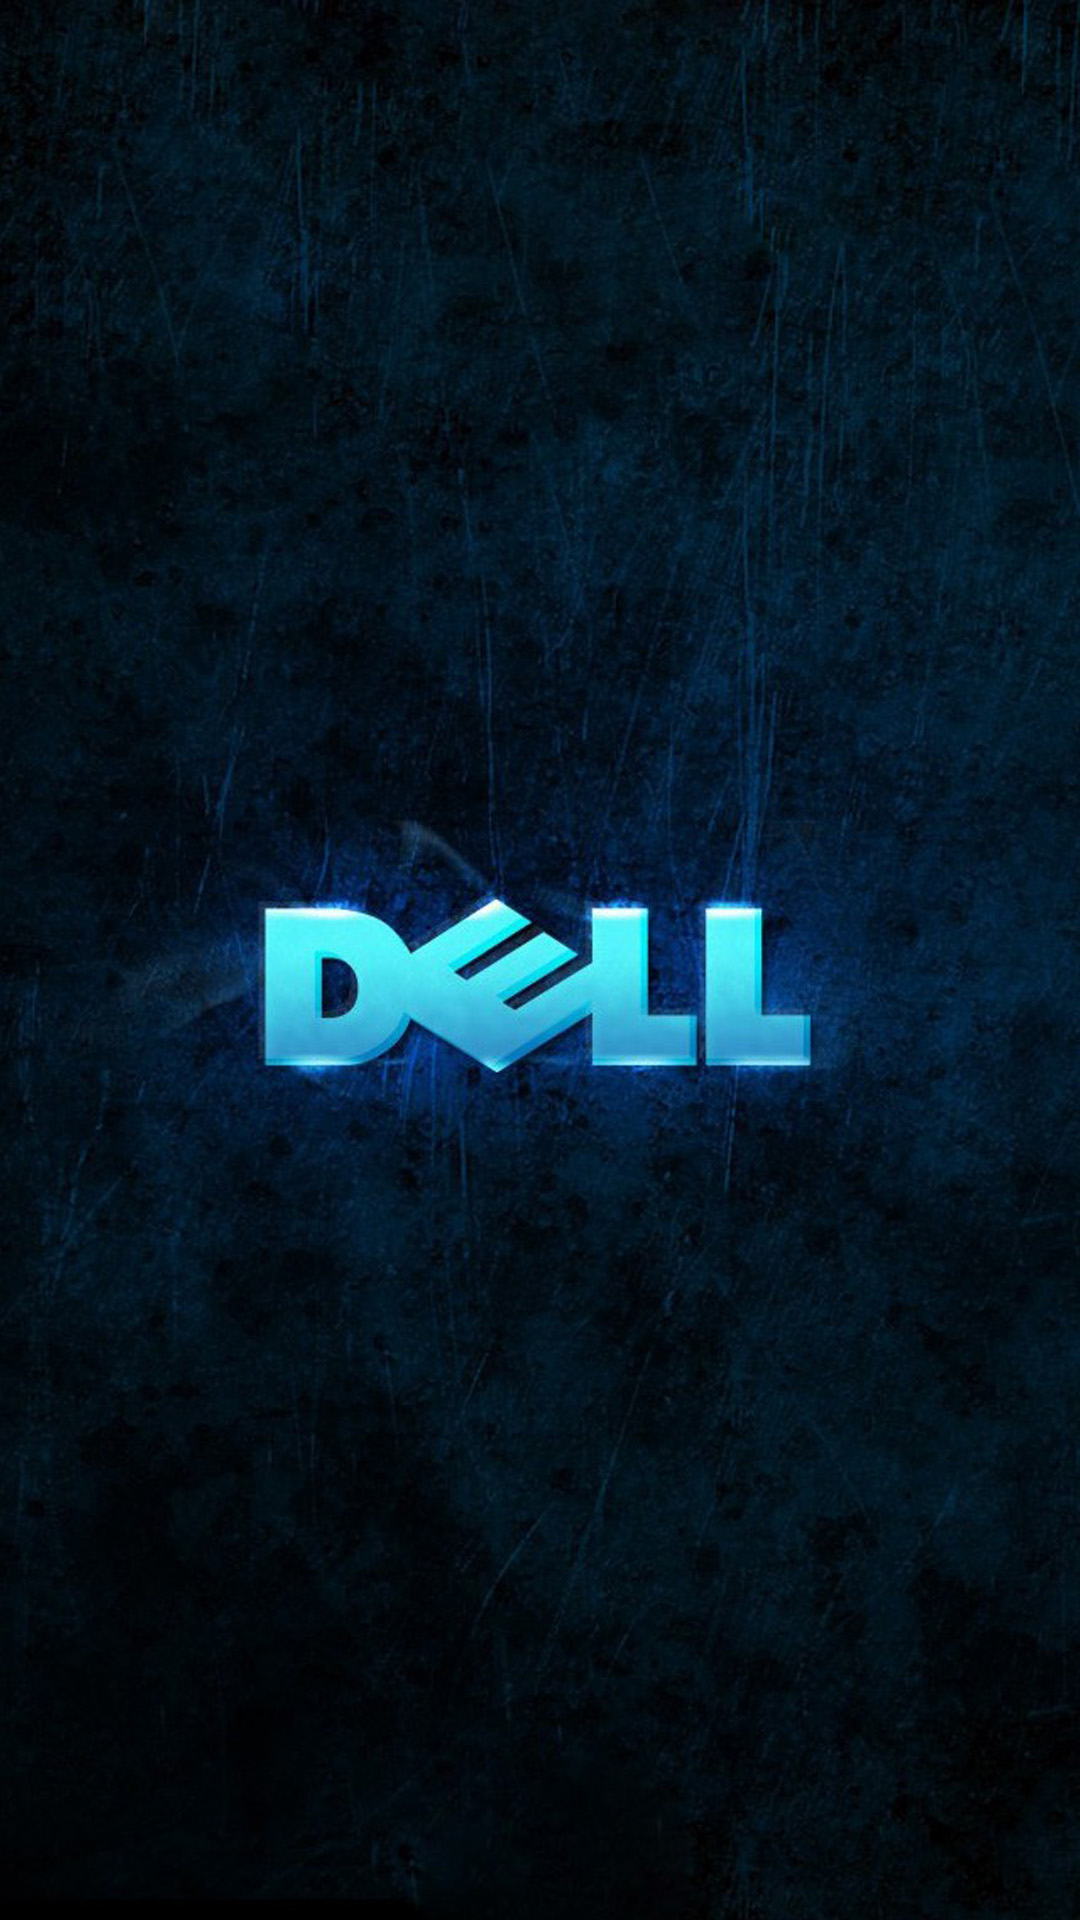 Dell Logo Best Htc One Wallpapers Free And Easy To Download